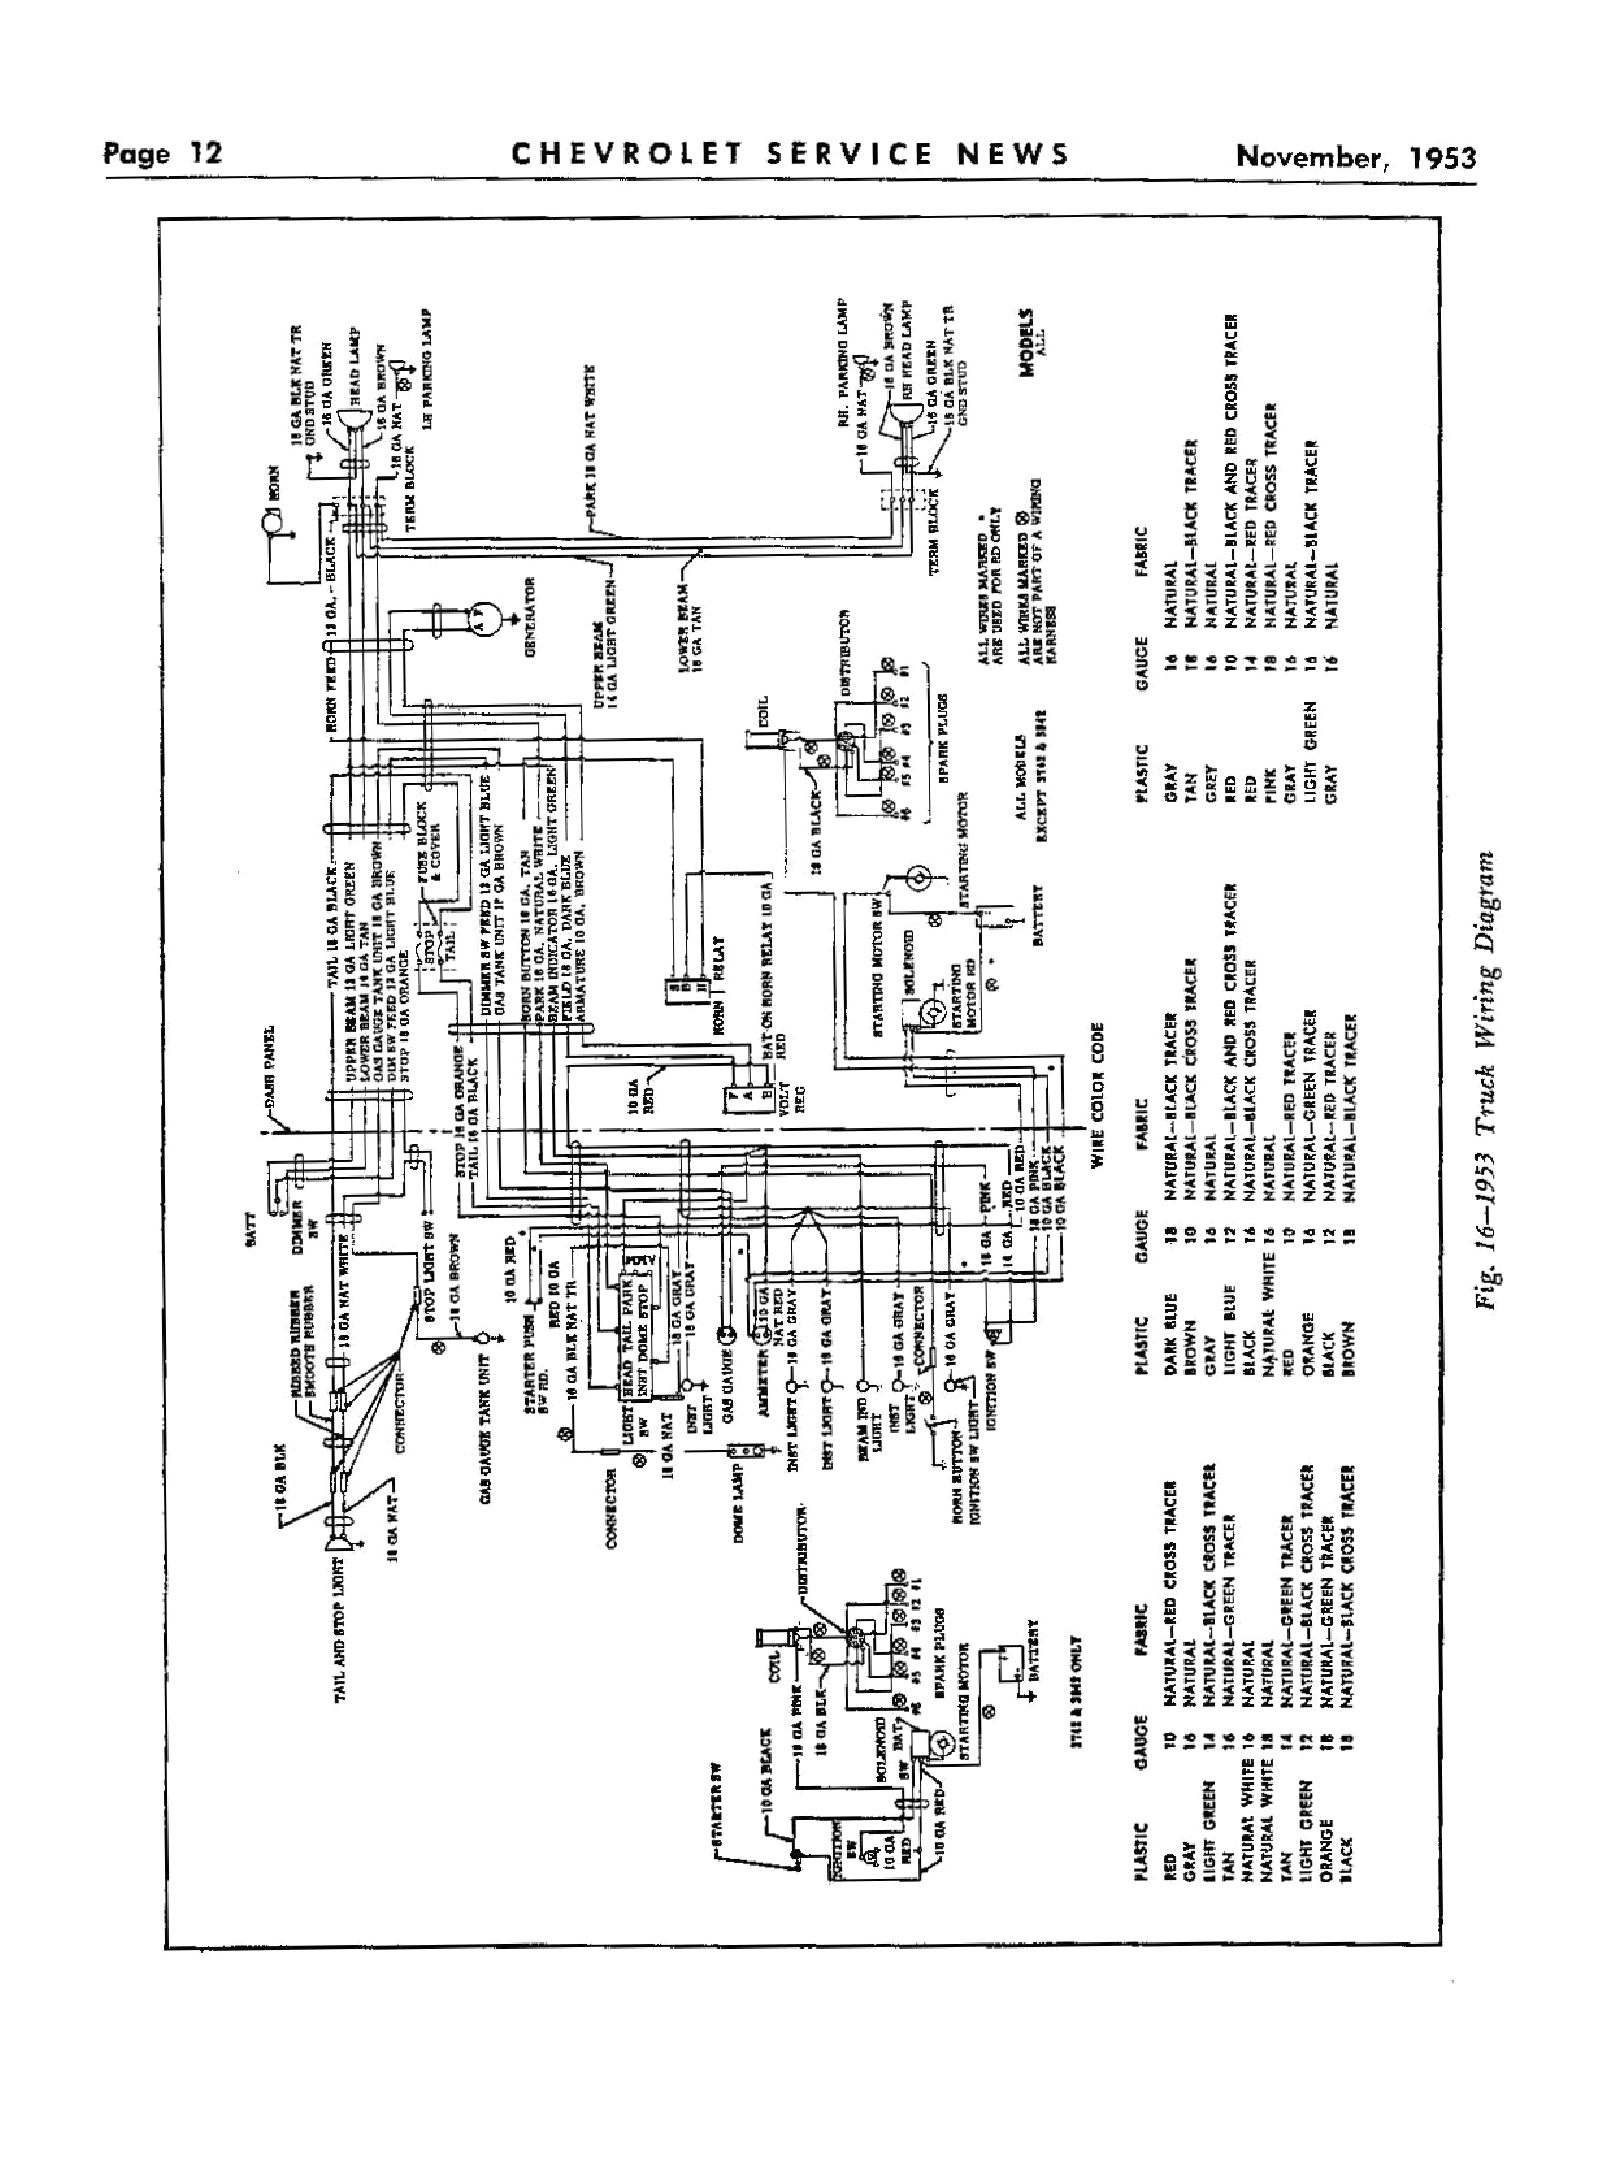 1956 chevy truck wiring diagram wiring diagram 1956 chevy wiring diagram wiring diagram